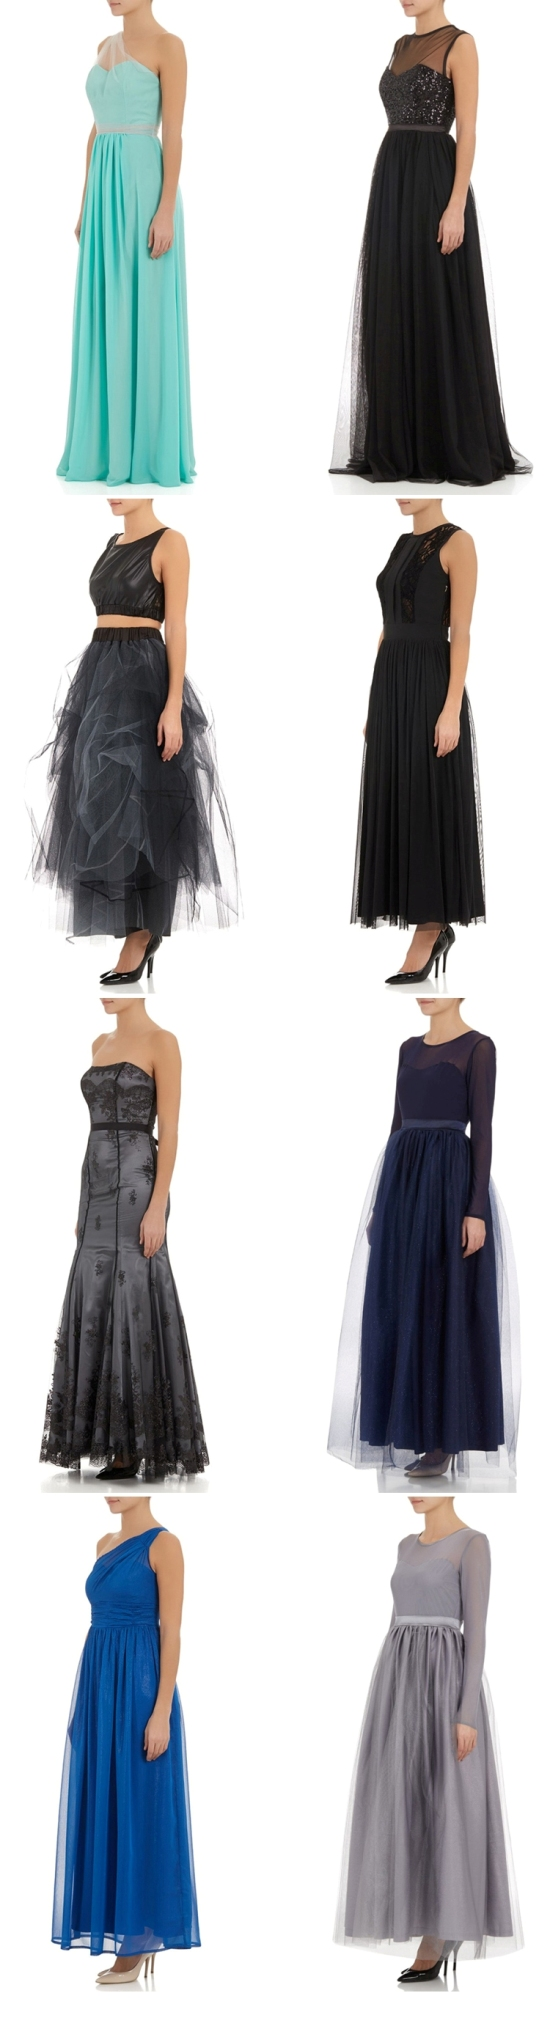 spree.co.za occasion dresses